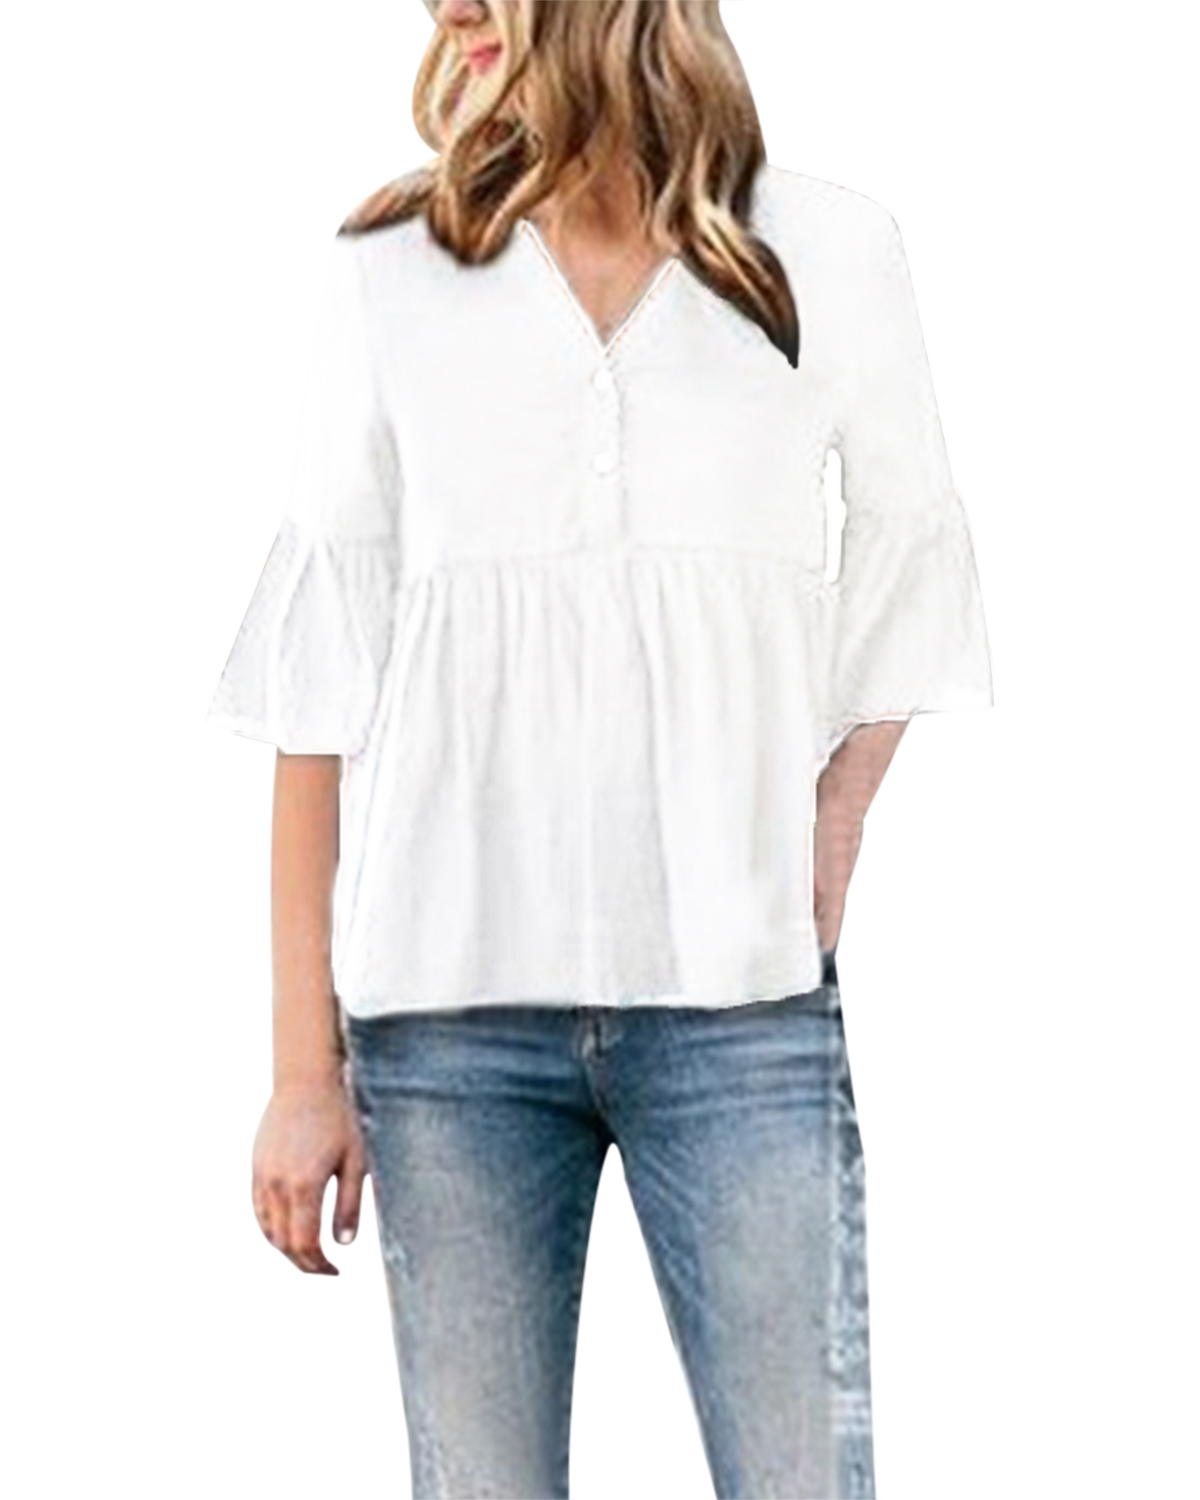 Women   Blouse     Shirt   2019 Summer Casual Loose Solid Color Button Sexy V-Neck Half Sleeve Tops Cotton Ruffles   Shirts   Plus Size 2XL